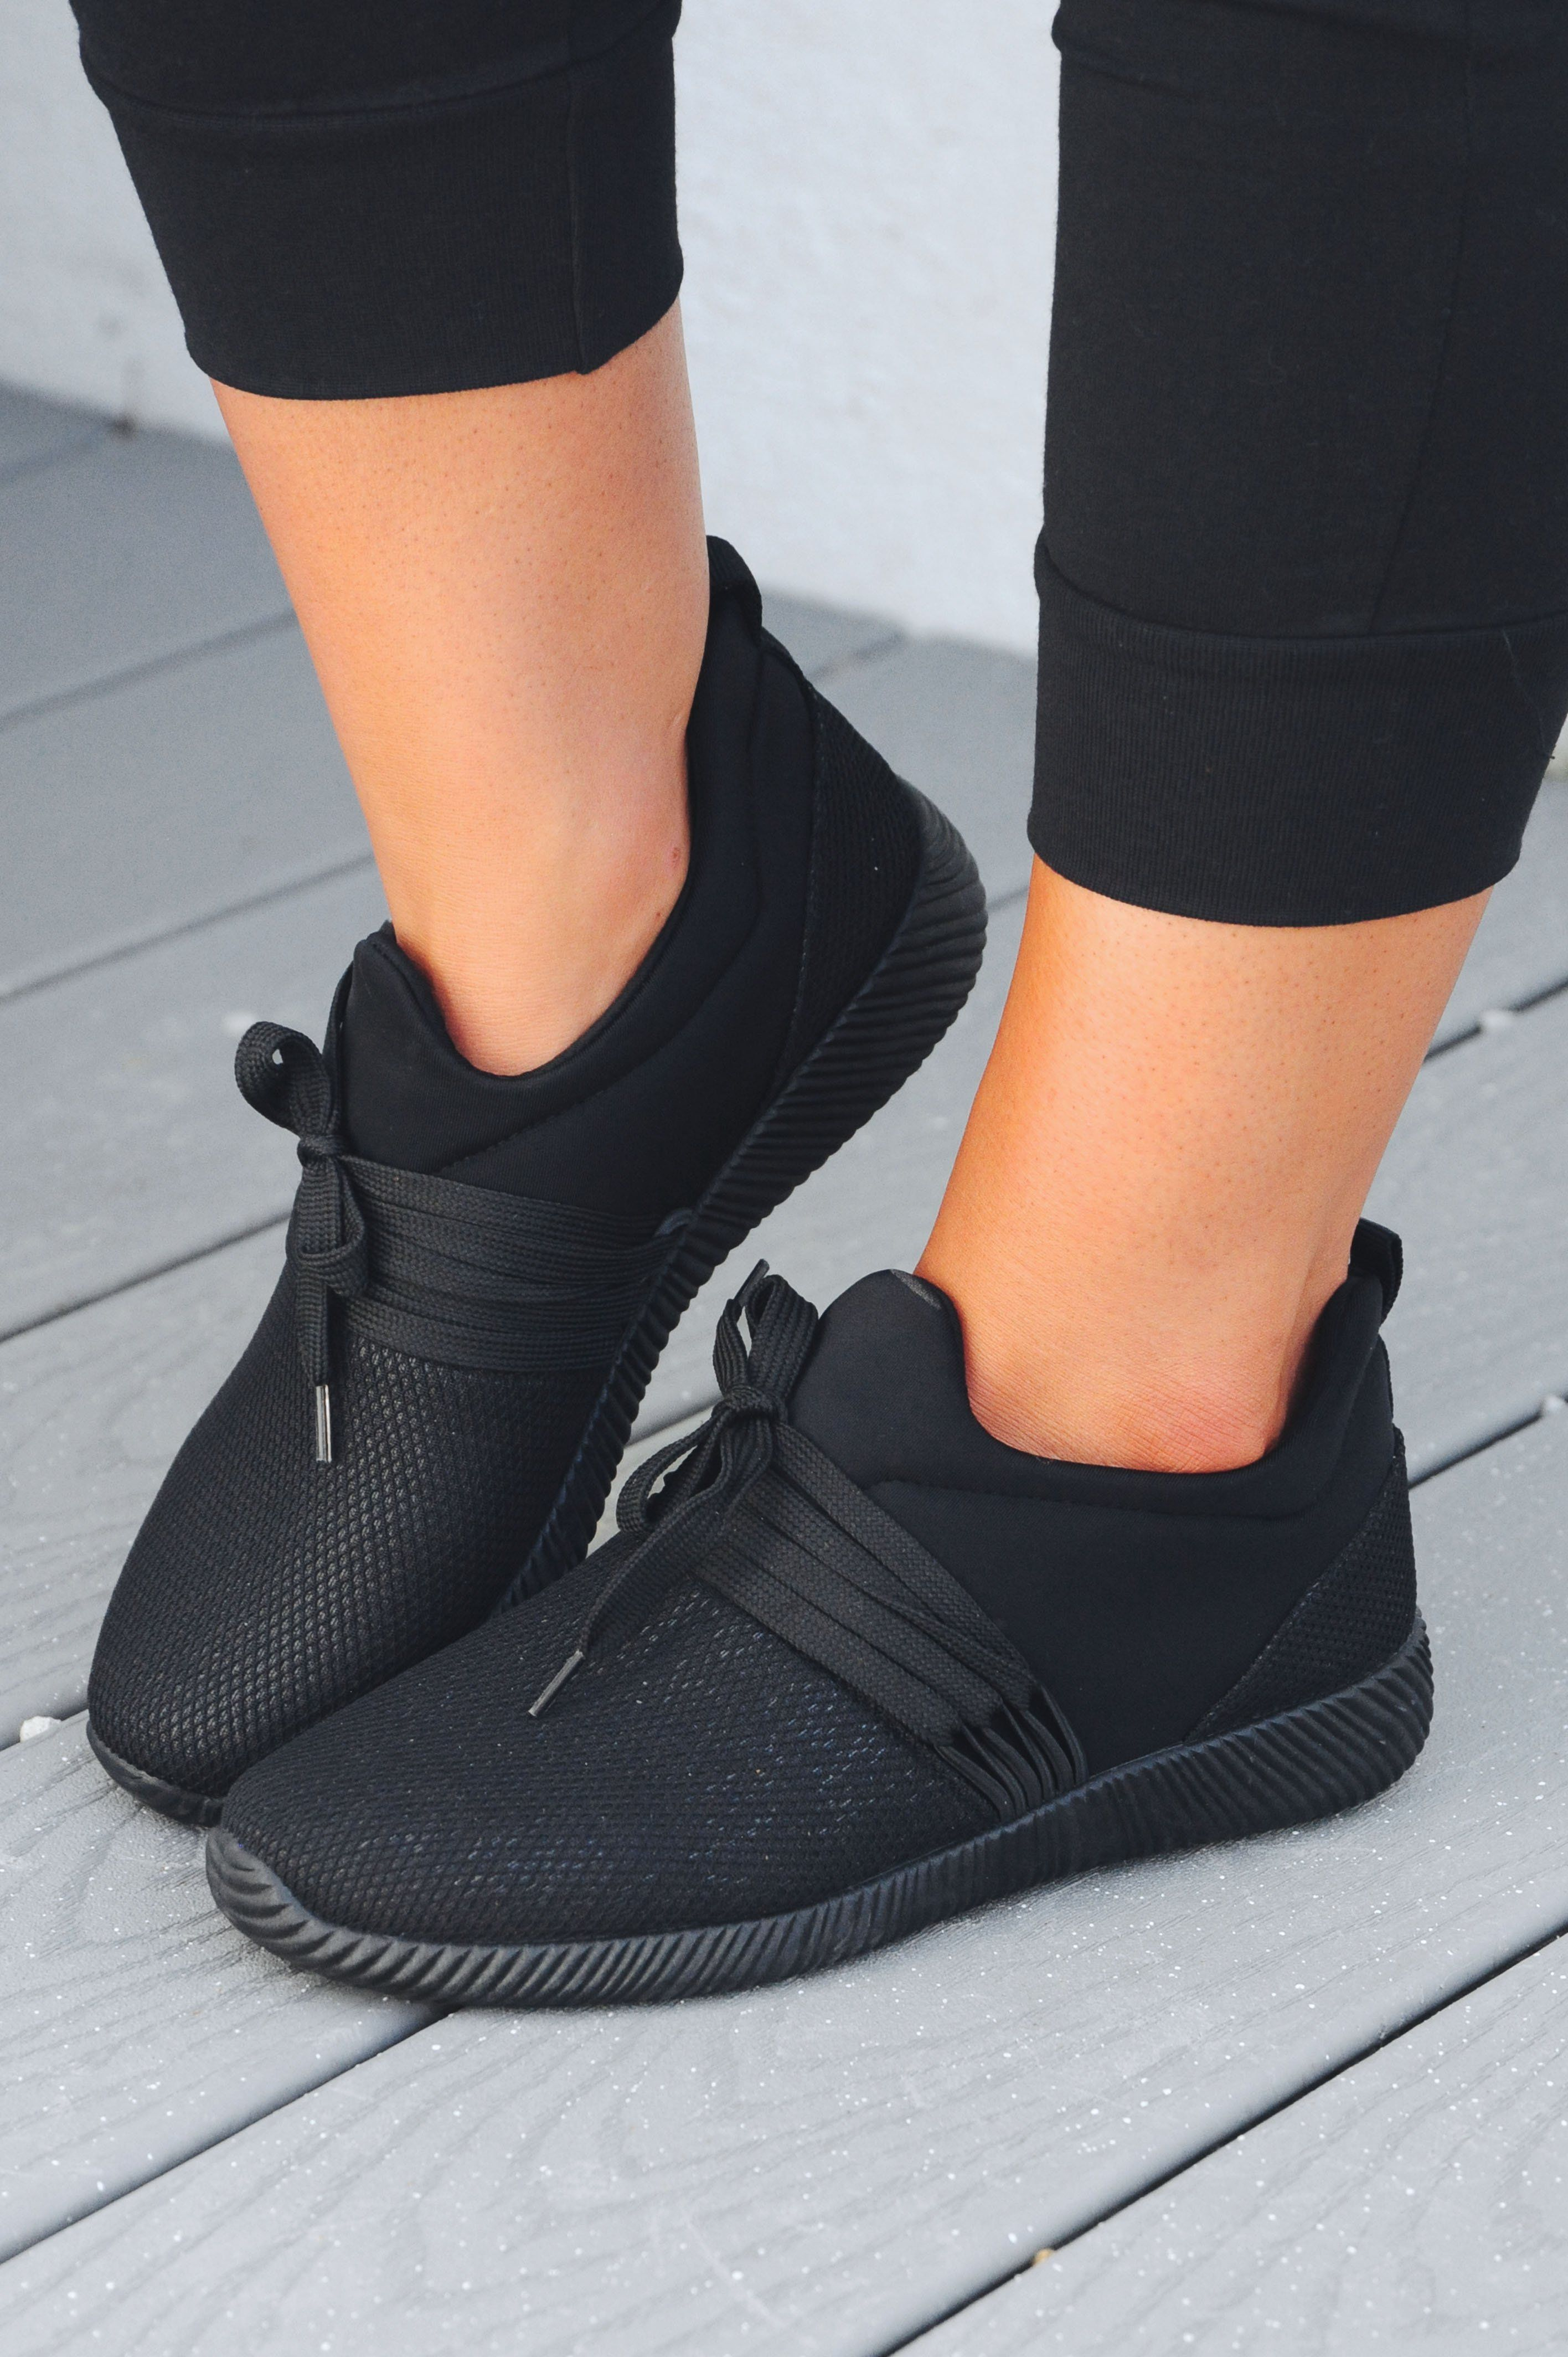 00601facfa29 Share to save 10% on your order instantly! Break Time Sneakers  Black